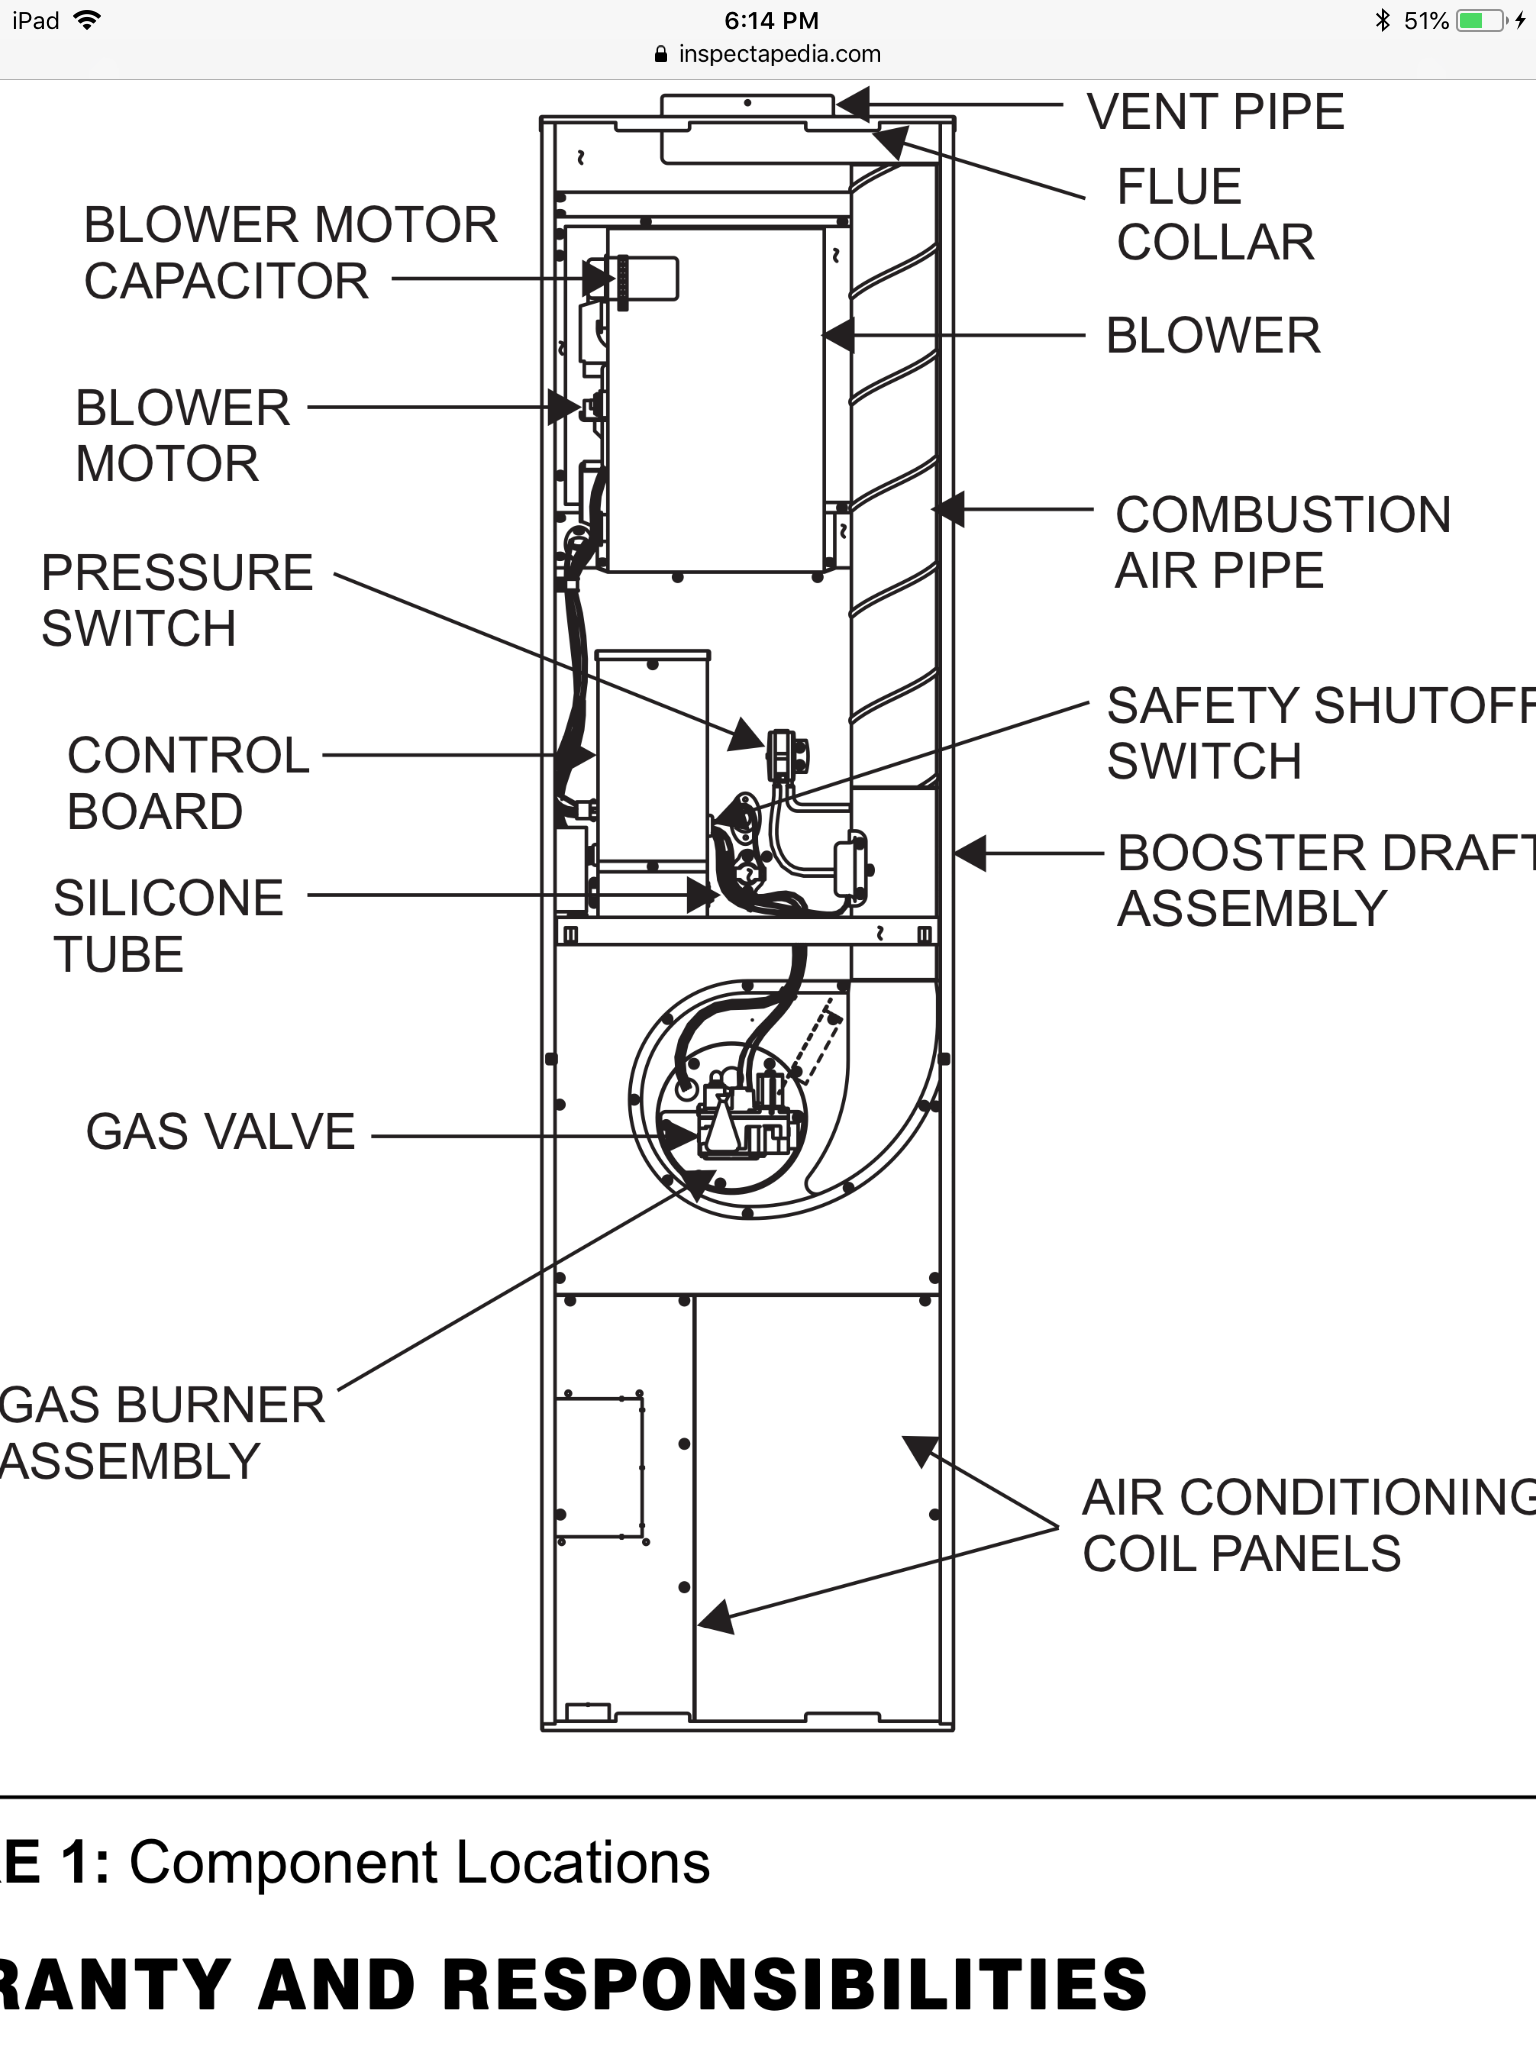 coleman blower dgrt070aua model numbers 3500a816 wiring diagram coleman furnace wiring diagram 3614 w000 #2